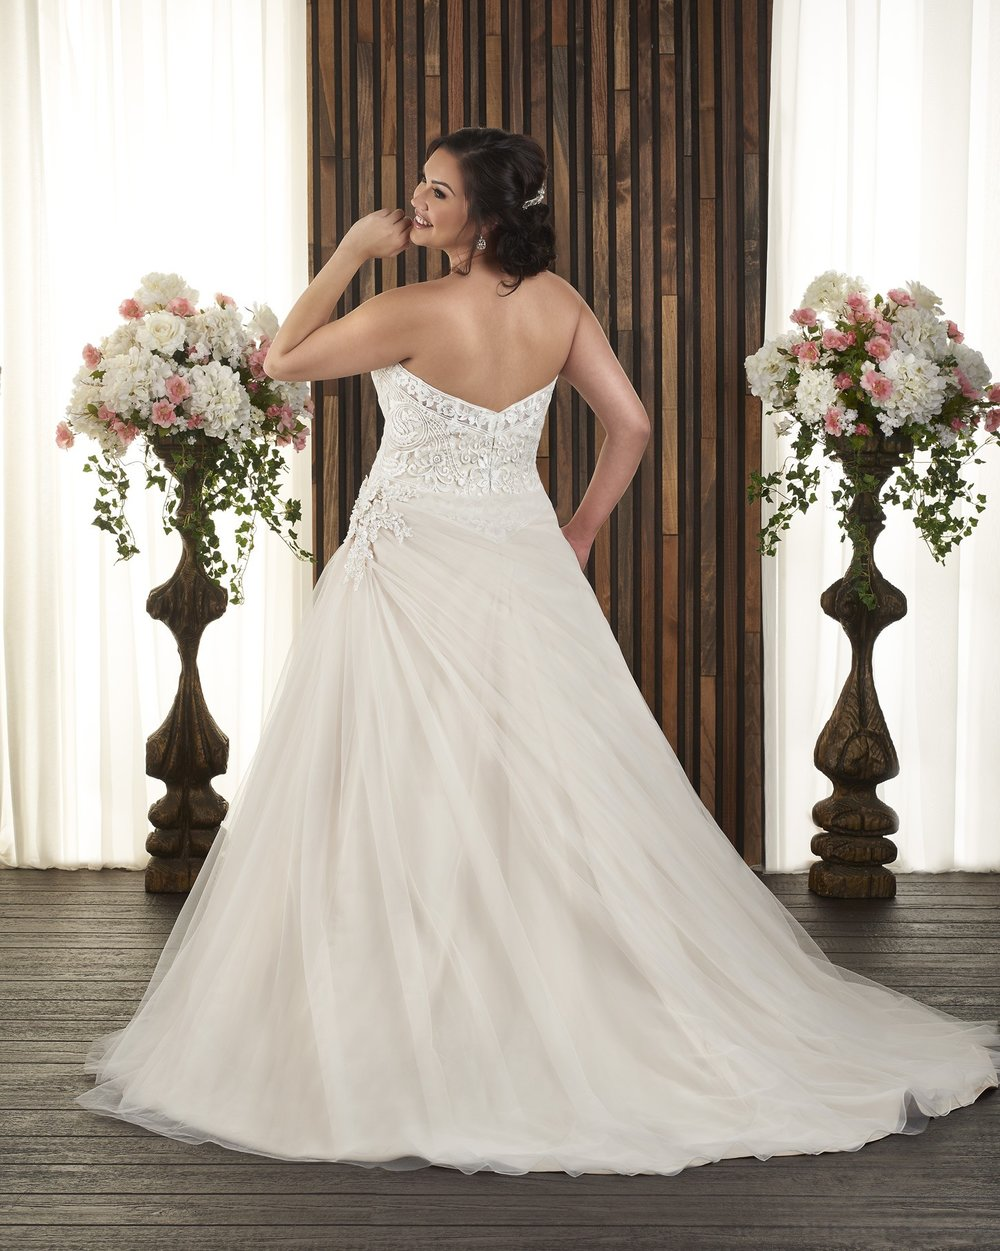 BonnyBridal-BridesbyYoung-PlusSizeWeddingDress-1728-1.jpg